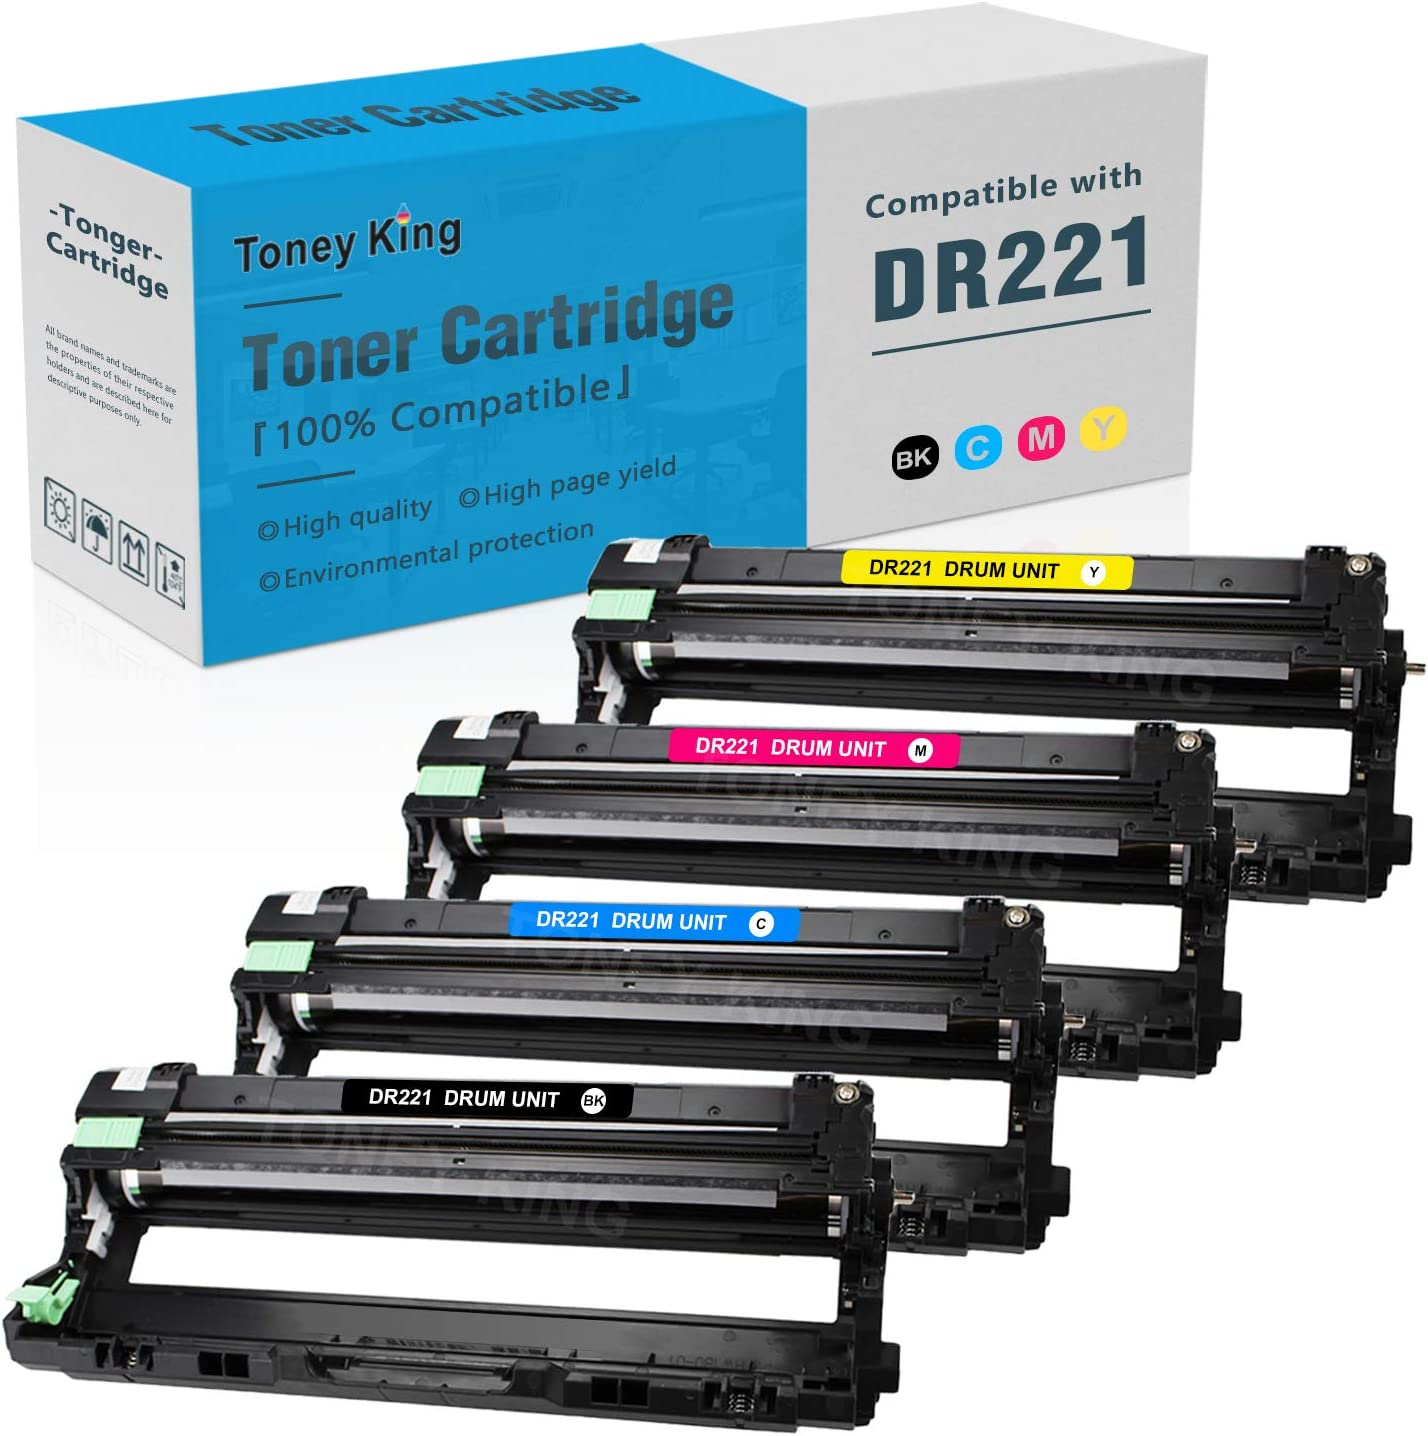 DR221 CL DR221-CL Drum Unit Set Compatible for Brother TN221 TN225 Toner Cartridge Replacement for Brother HL-3140CW HL-3170CDW MFC-9130CW MFC-9330CDW MFC-9340CDW Printer (15,000 Pages) by Toney King